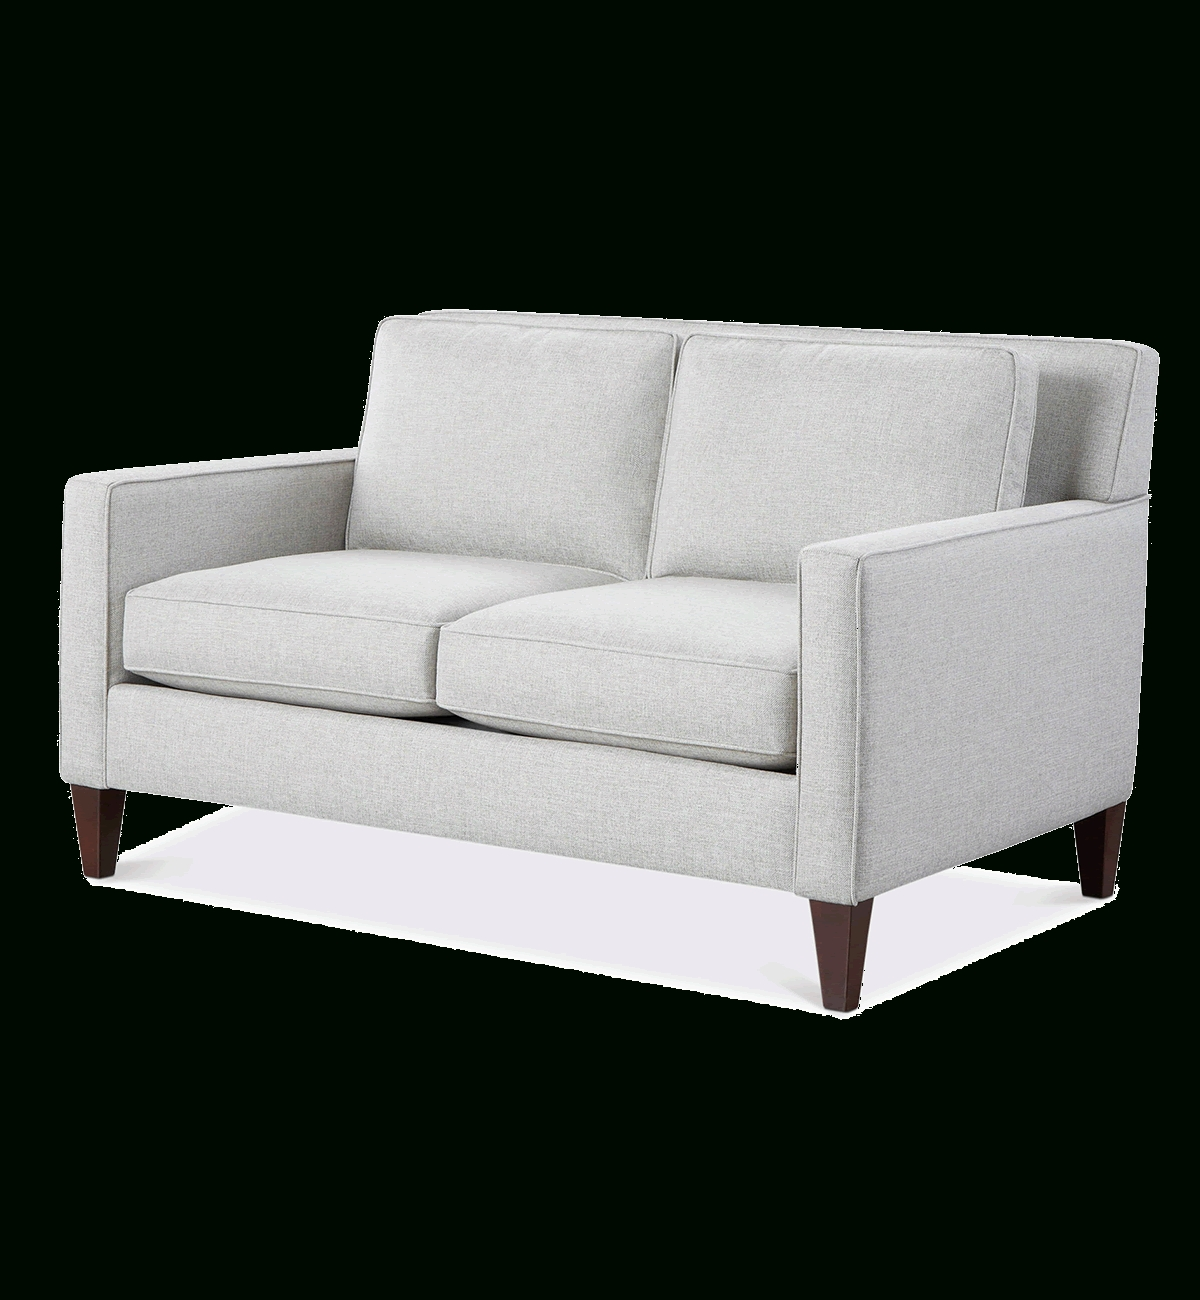 Macys Leather Sofas For Well Known Leather Couches And Sofas – Macy's (View 7 of 15)